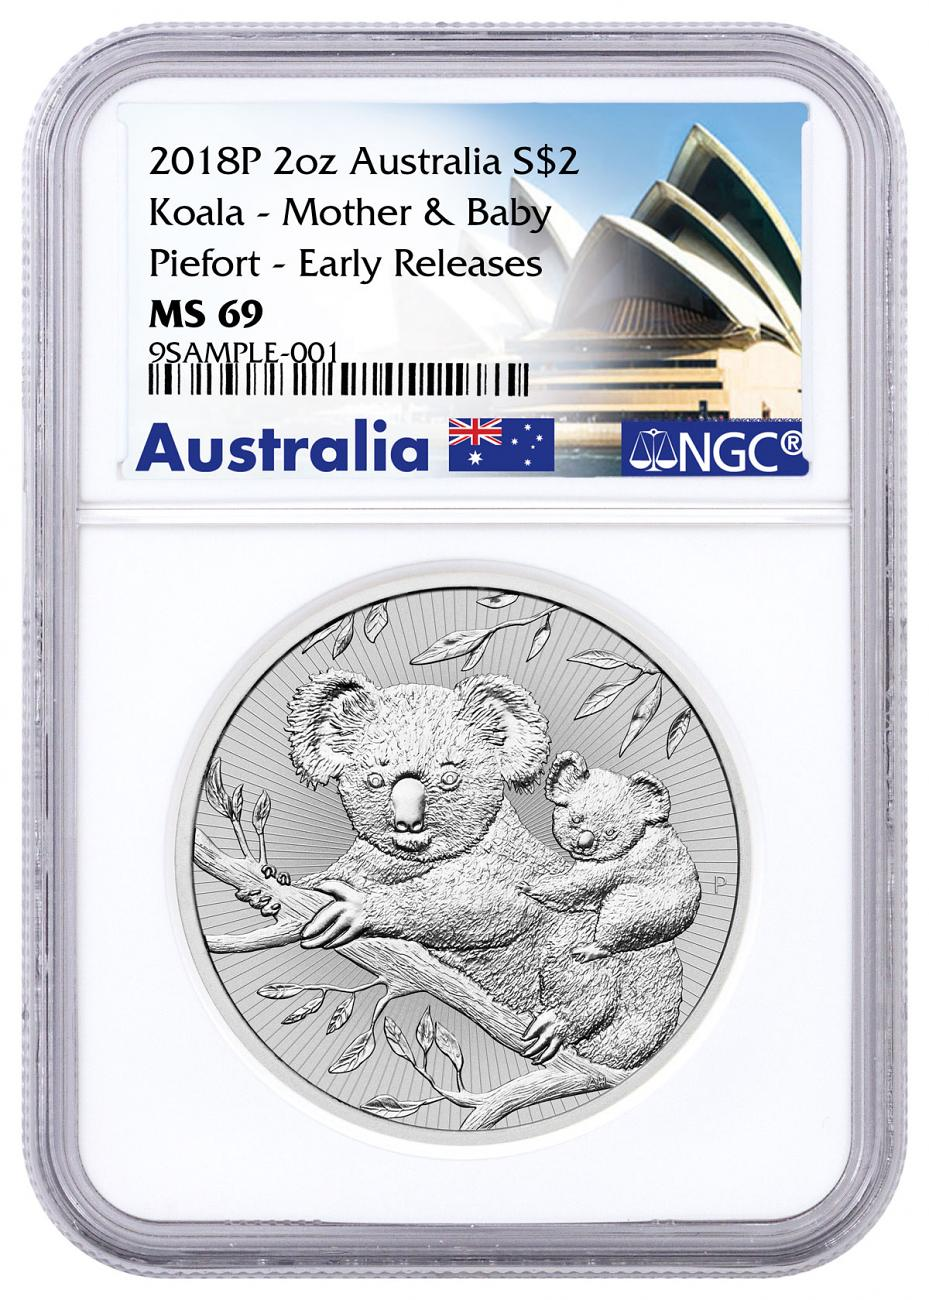 2018-P Australia 2 oz Silver Koala - Mother & Baby $2 Coin Piedfort NGC MS69 ER Exclusive Australia Label